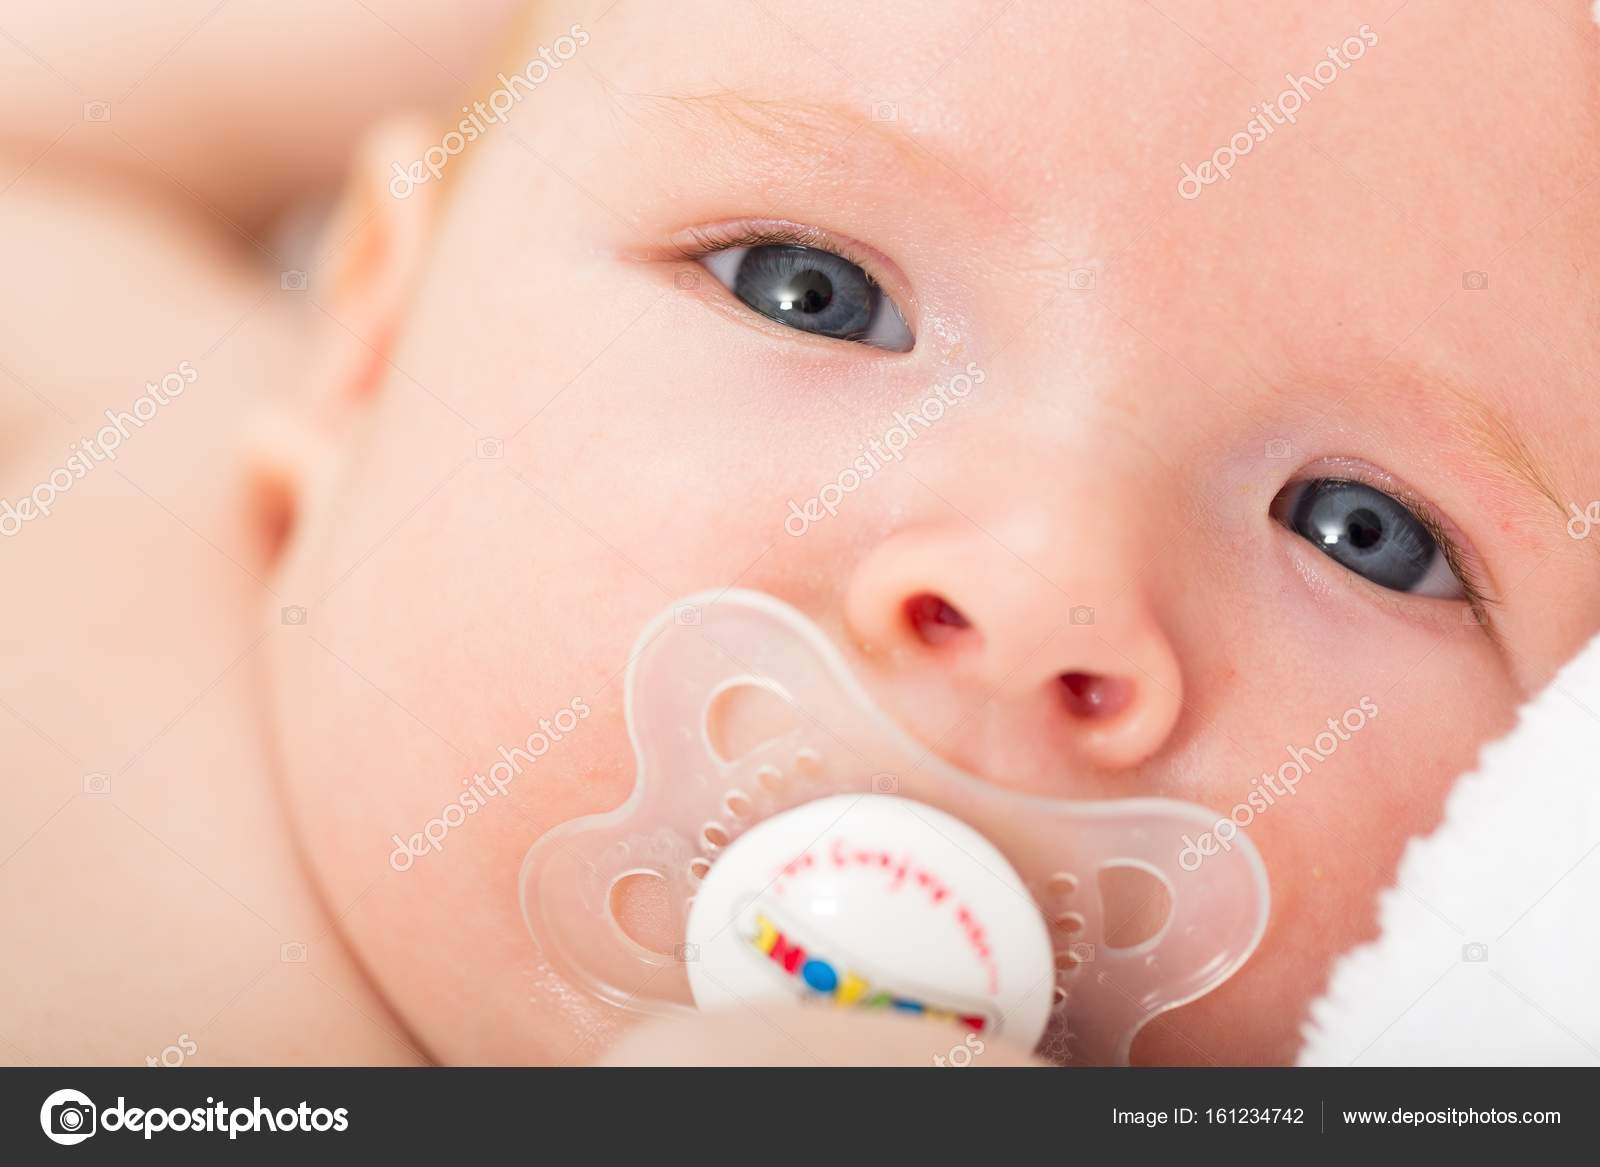 Newborn Babies For Dummies Adorable Little Newborn Baby Dummy Mouth Stock Photo